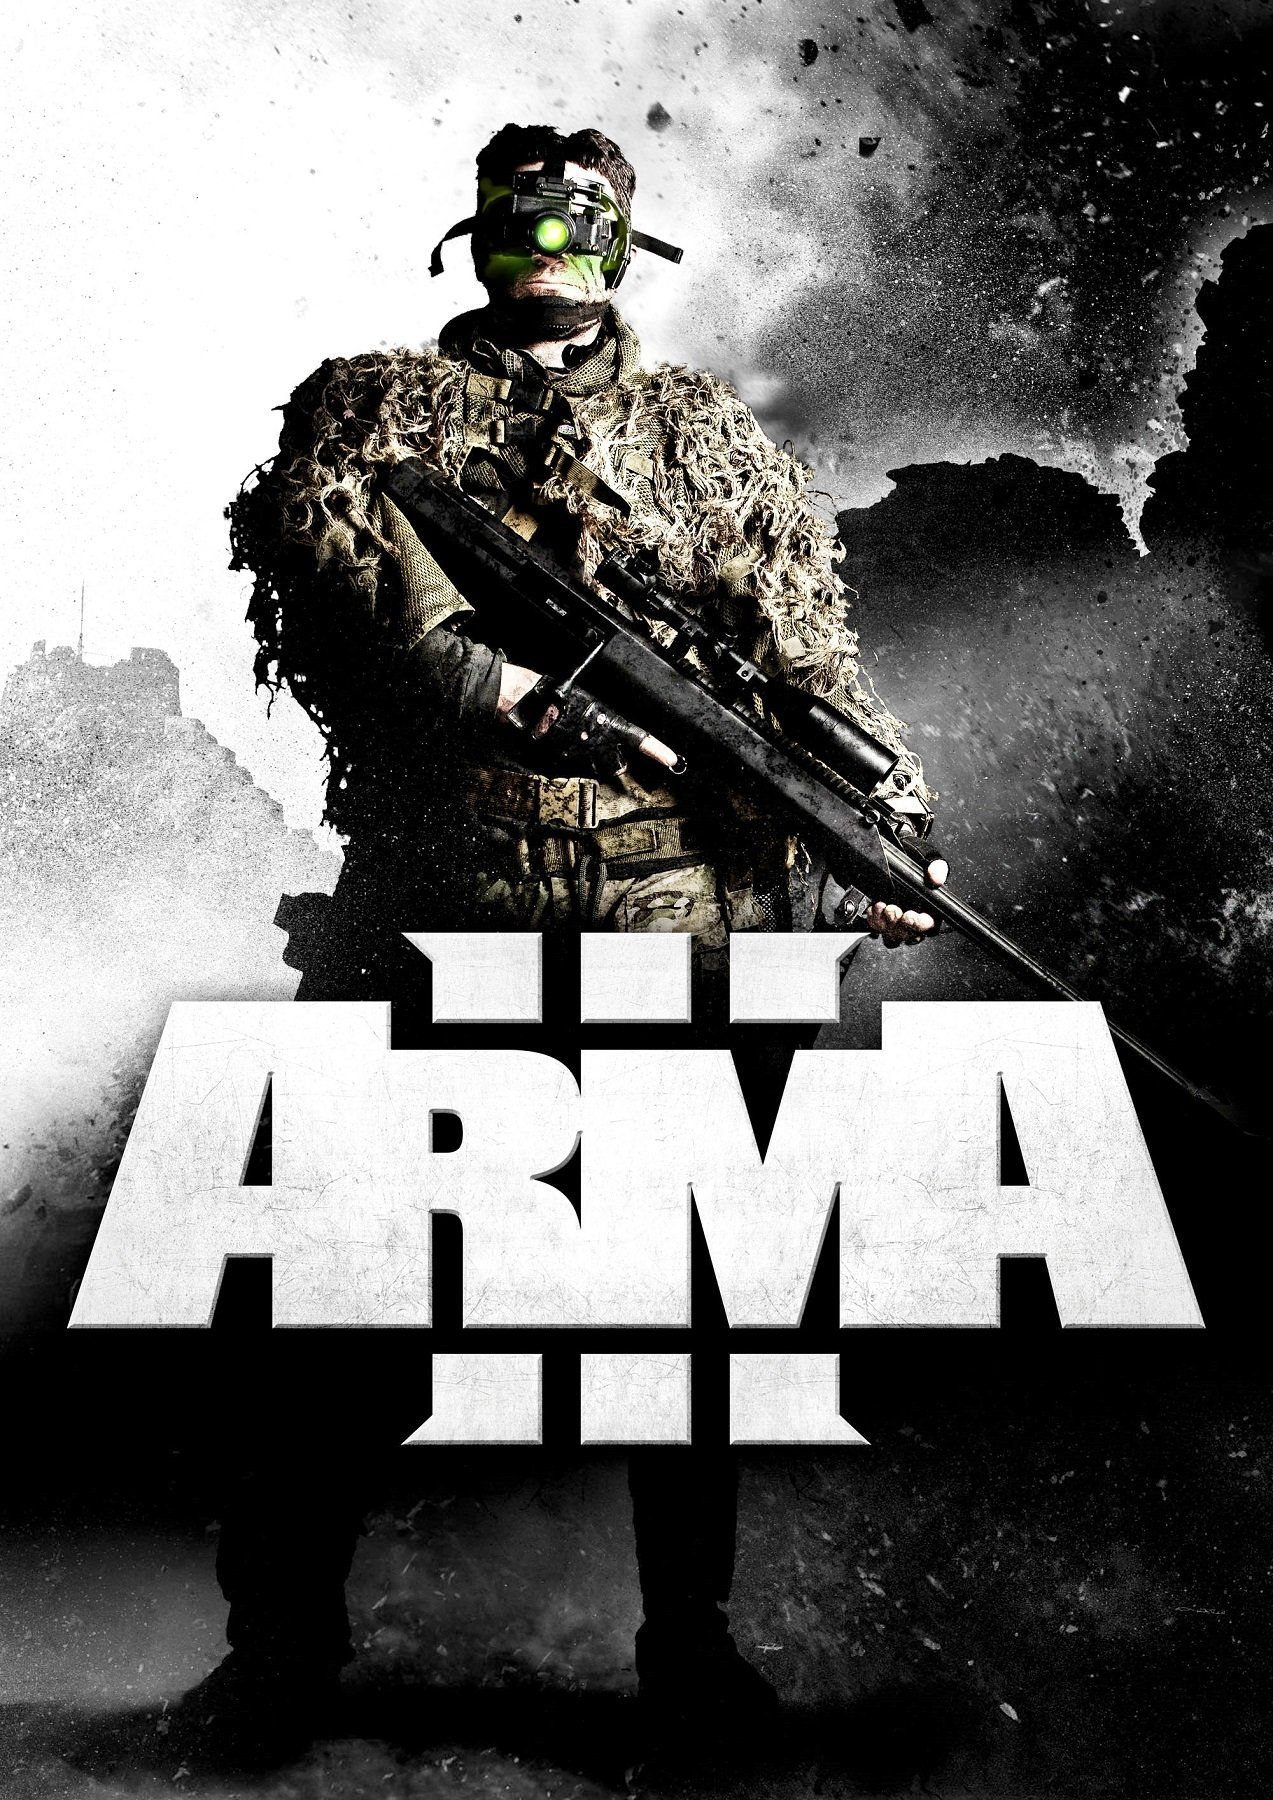 Arma 3 Poster | Video Game Posters in 2019 | Arma 3, Video game